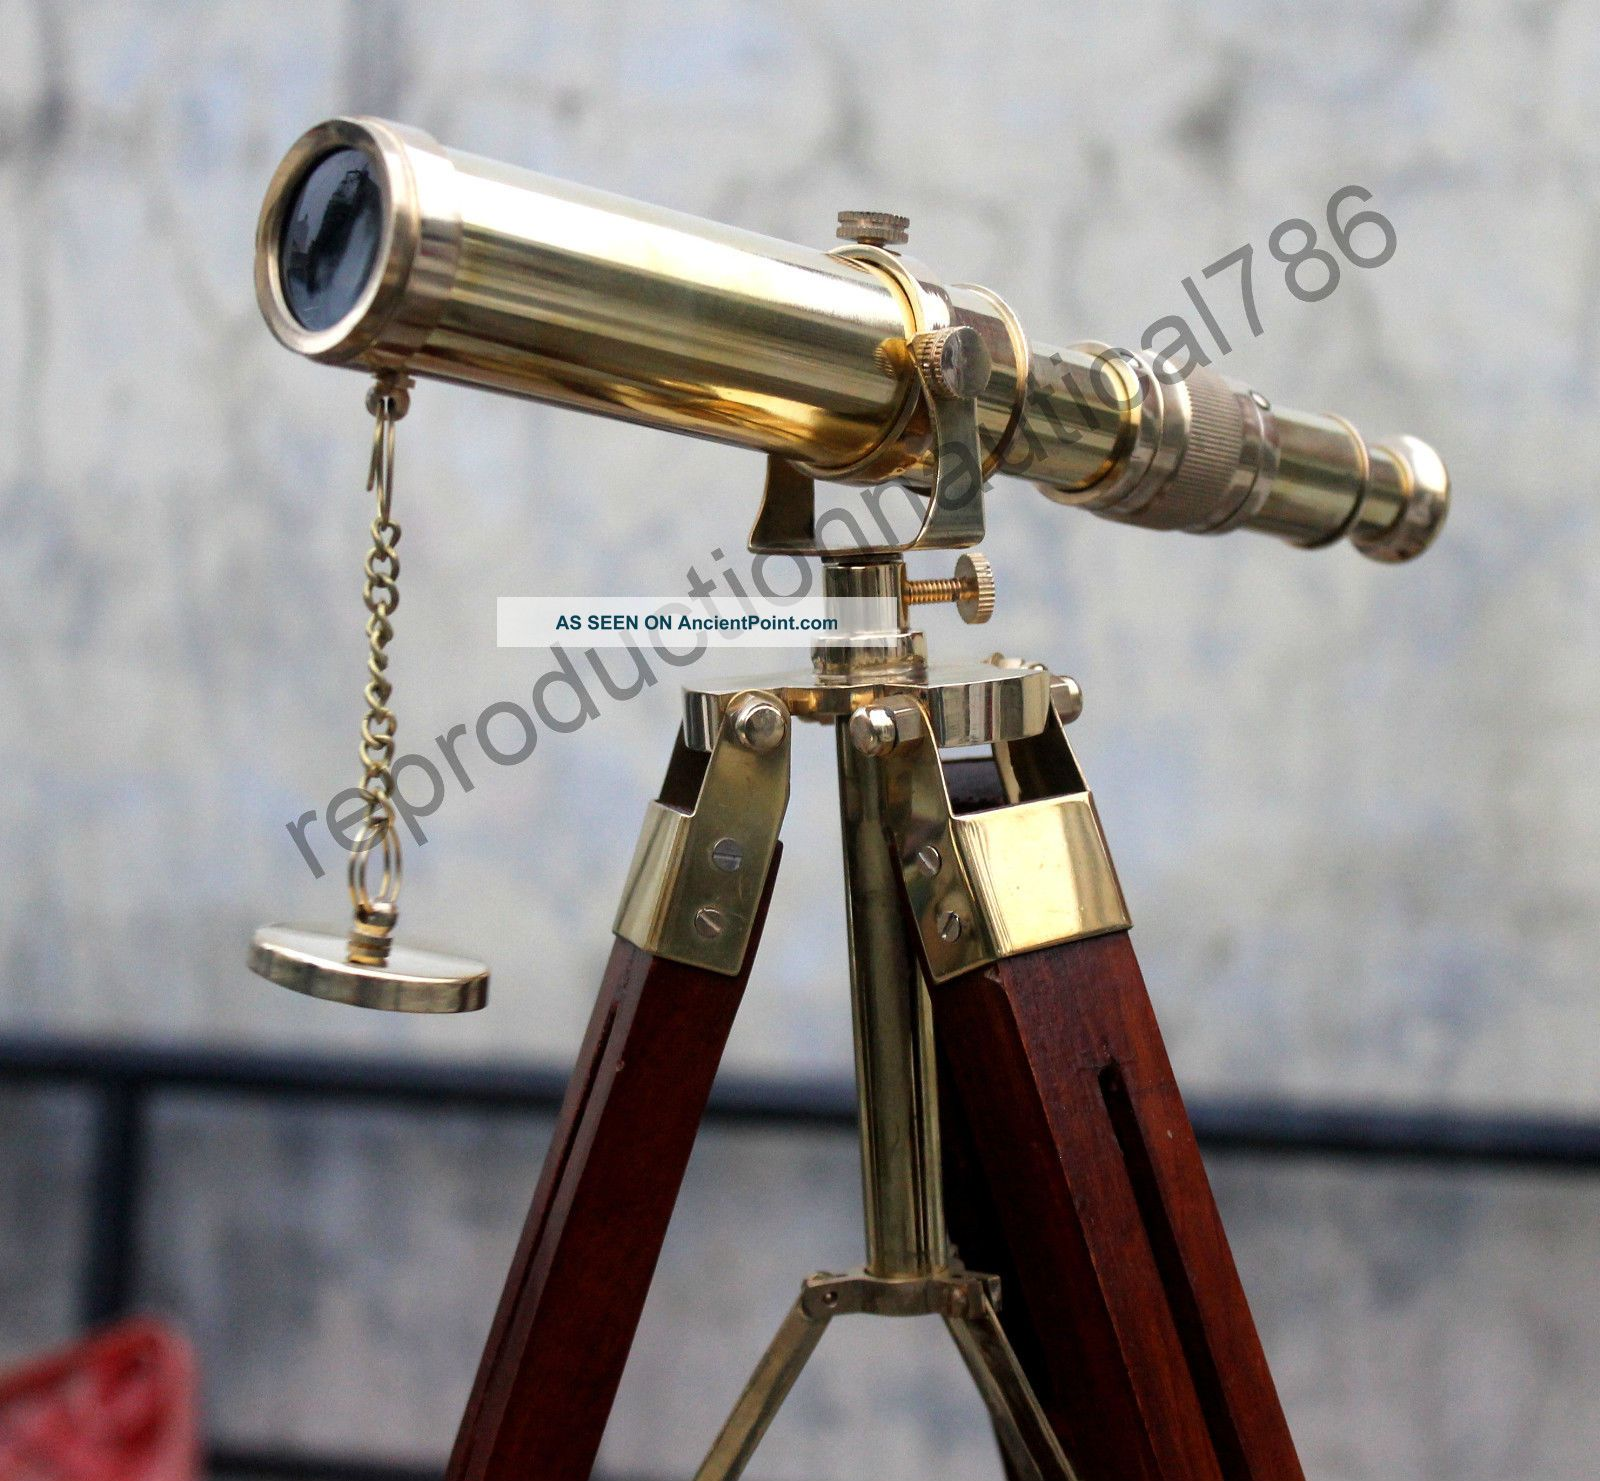 Vintage Marine Ship Master Brass Telescope With Wooden Tripod Scope Collectible Telescopes photo